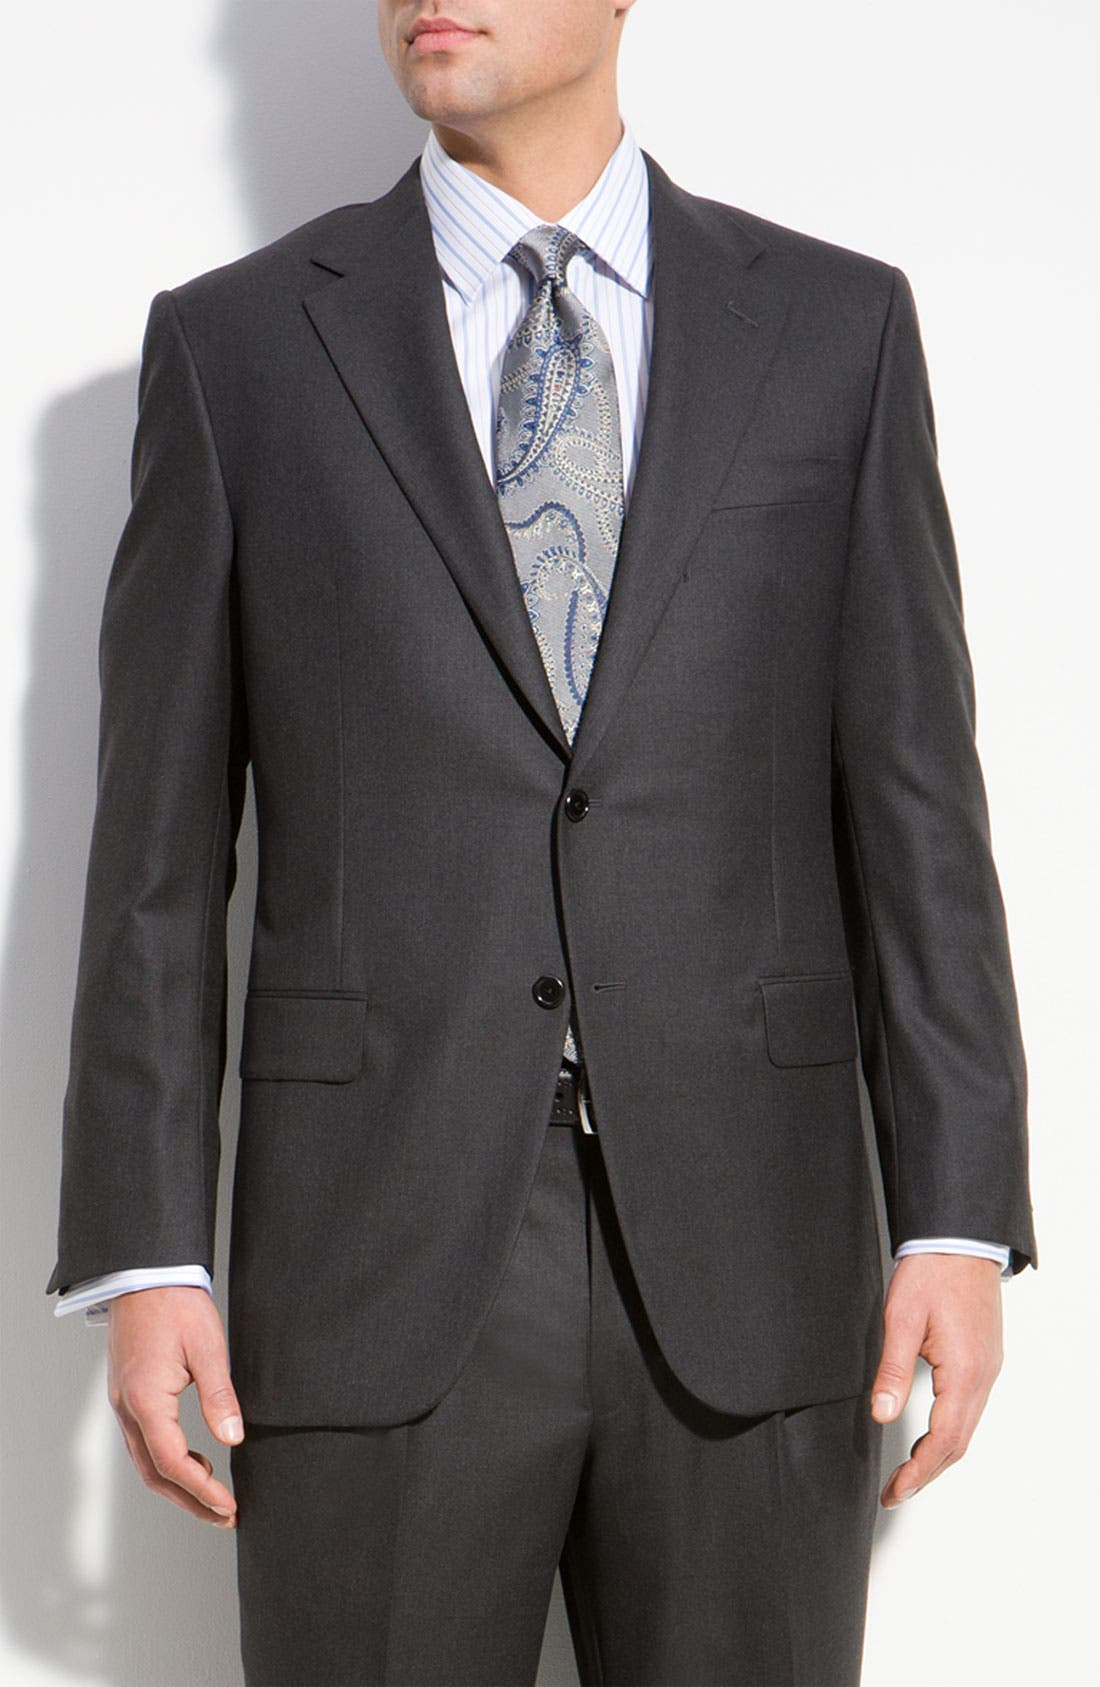 Main Image - Hickey Freeman A Fit Wool Suit